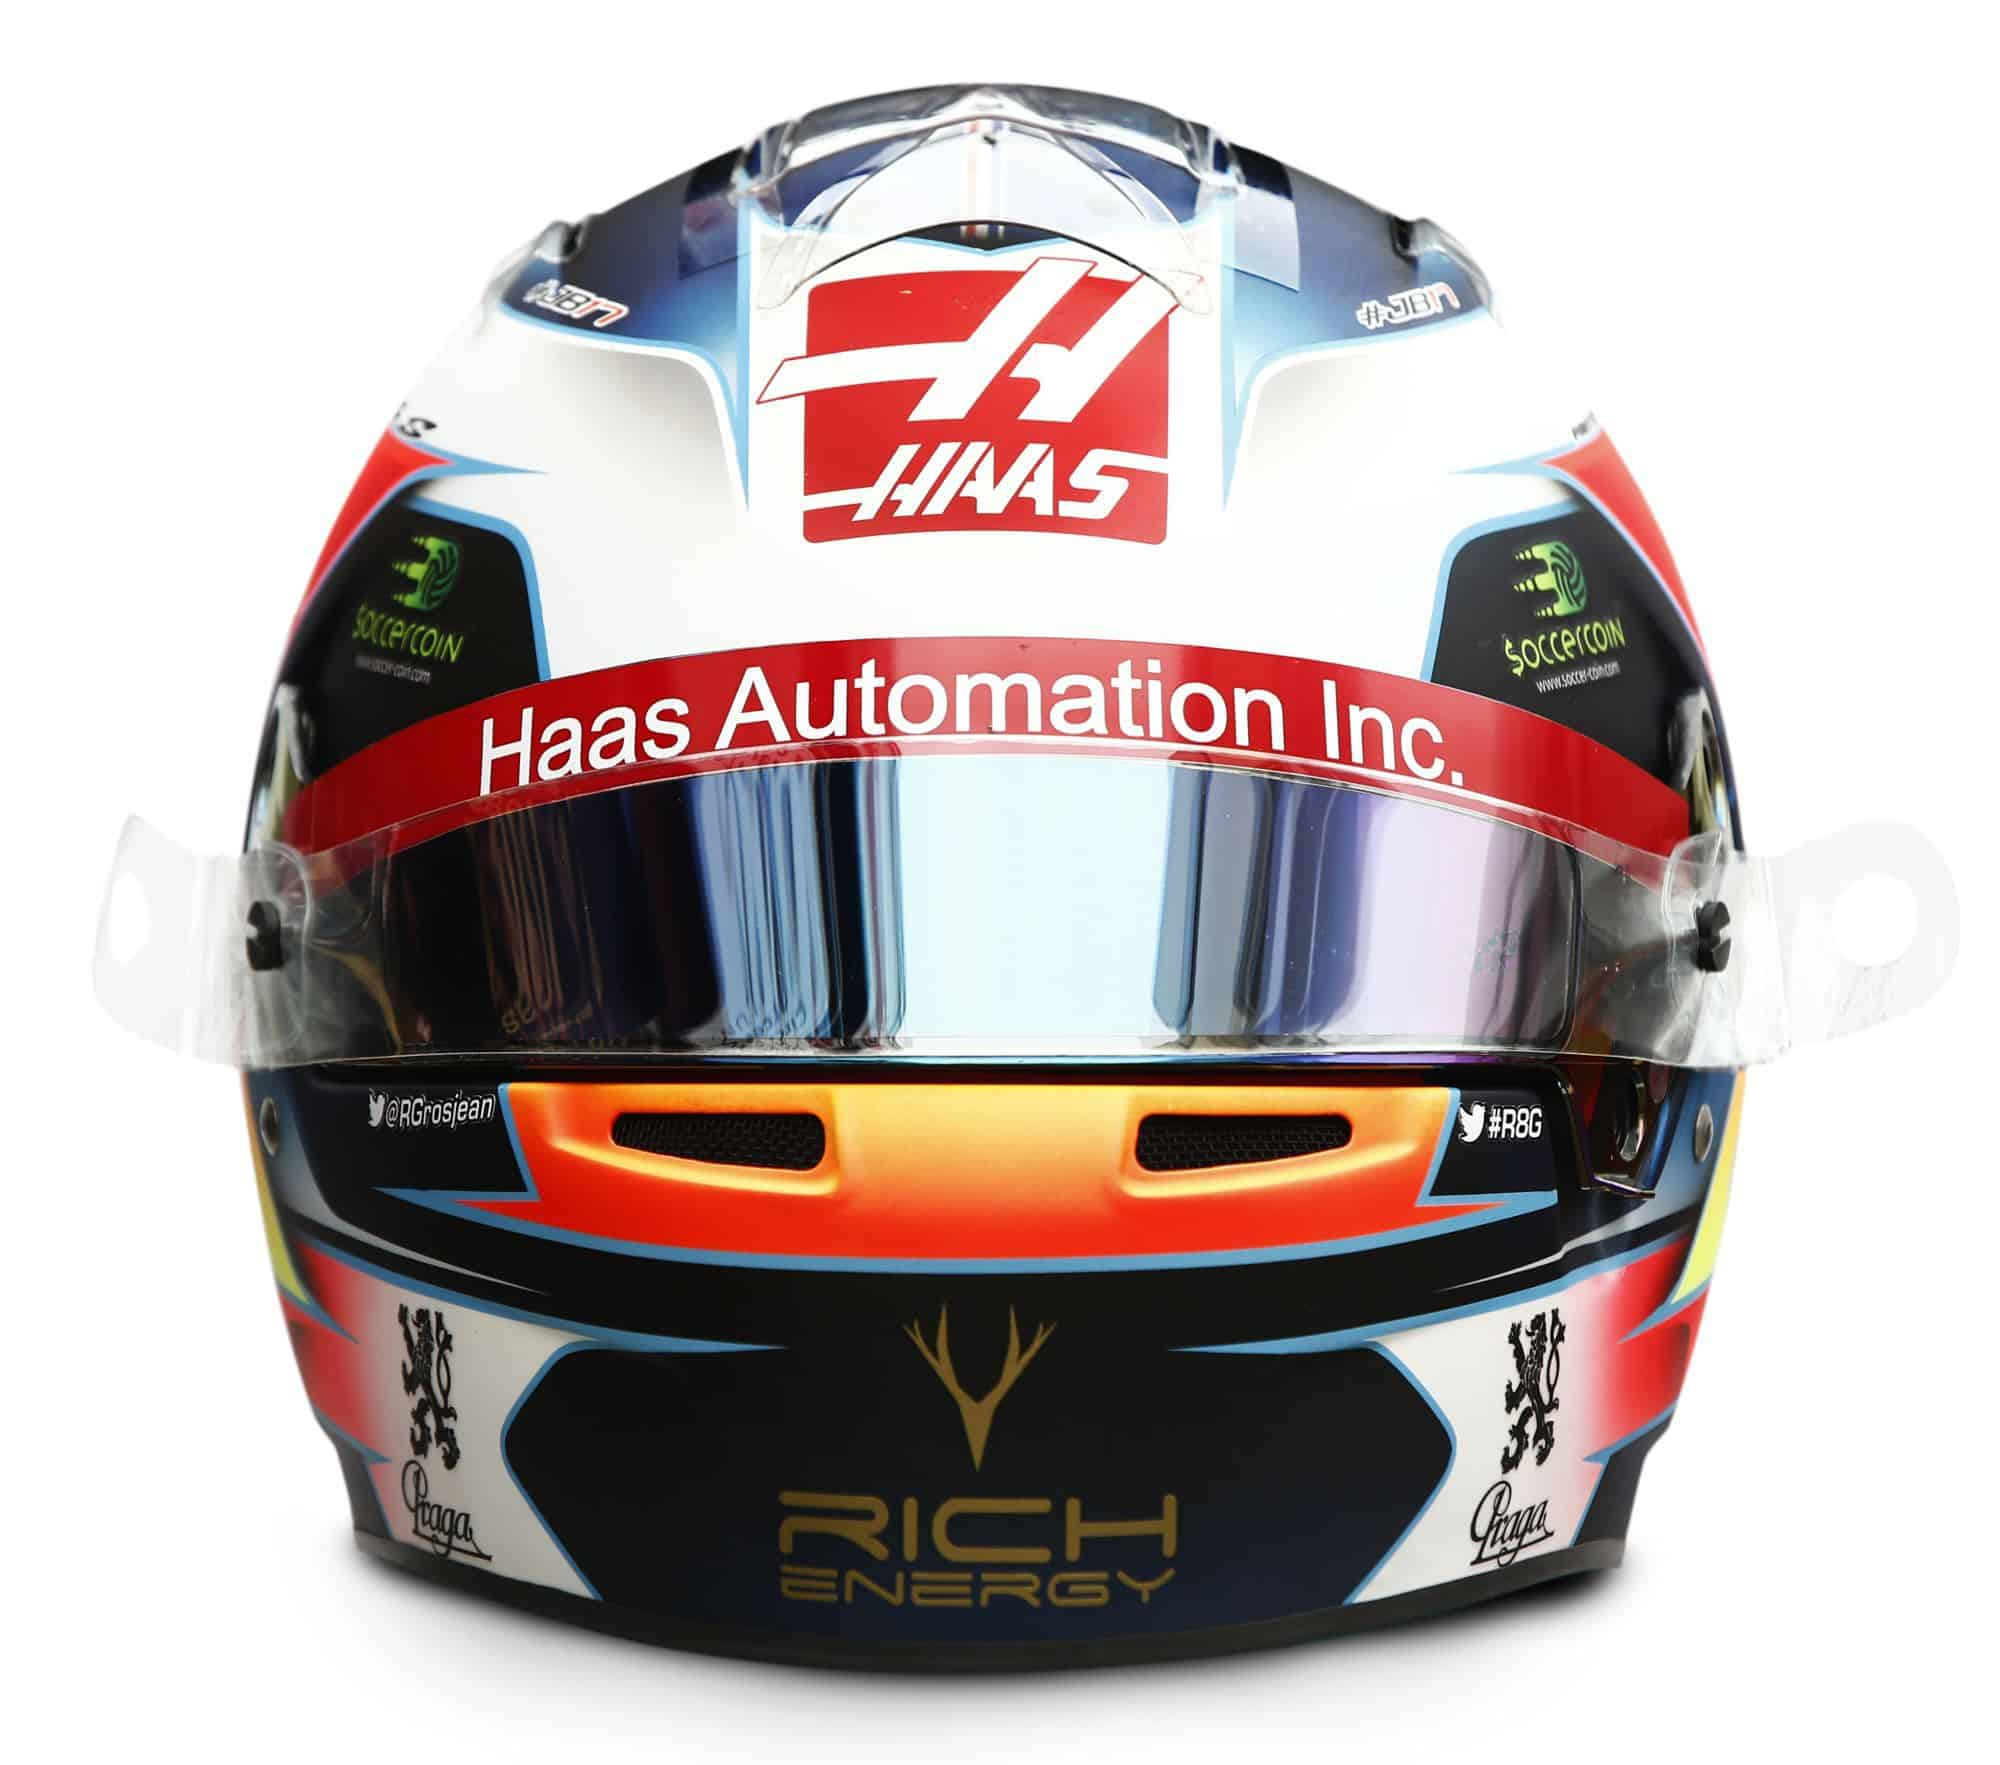 2019 Rich Energy Haas F1 Team Romain Grosjean helmet front Photo Haas Edited by MAXF1net